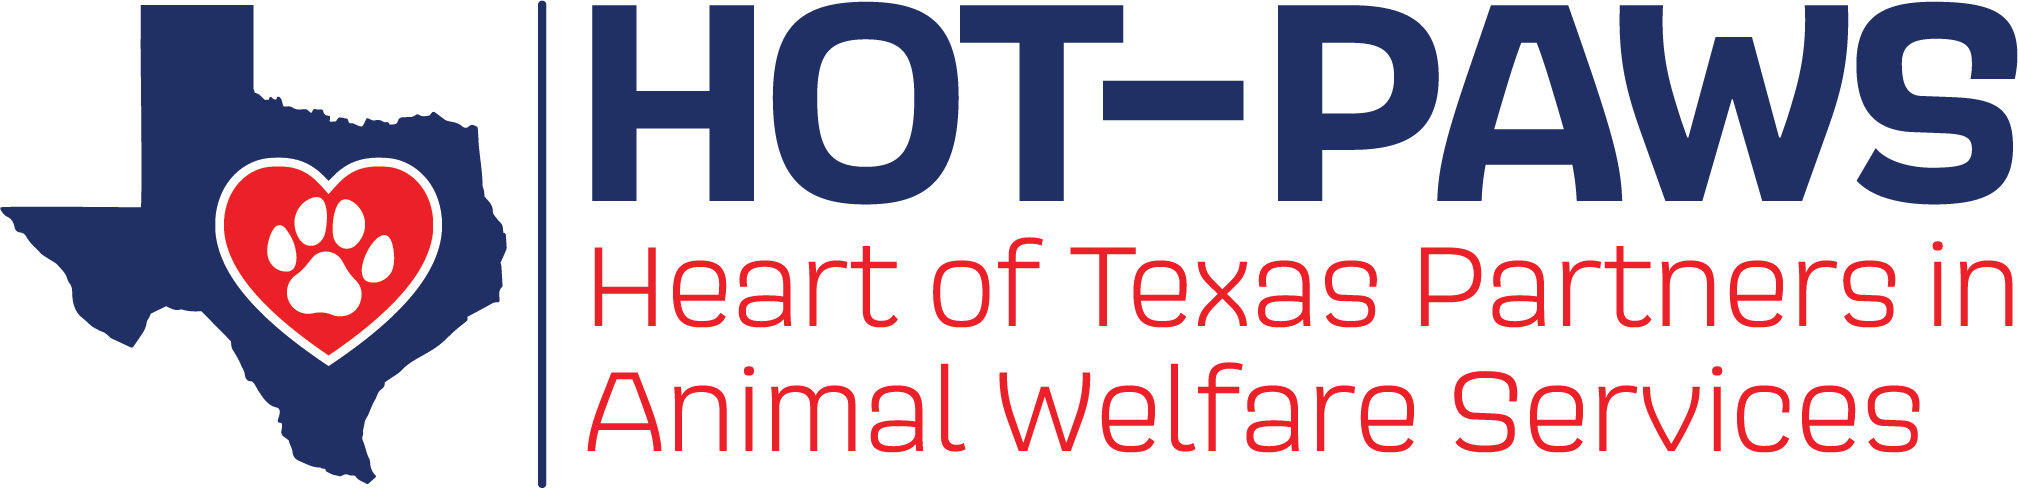 Heart of Texas Partners in Animal Welfare Services (HOT-PAWS)